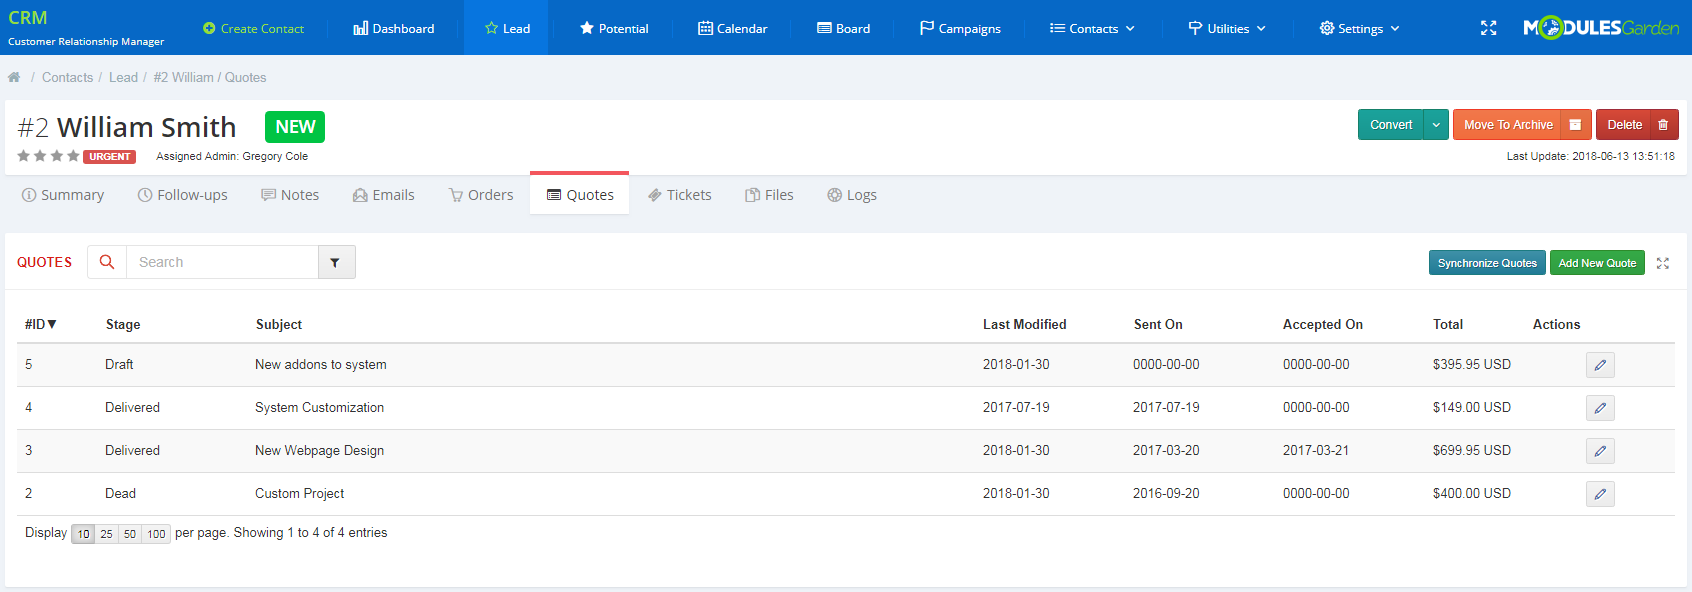 CRM For WHMCS: Screen 6